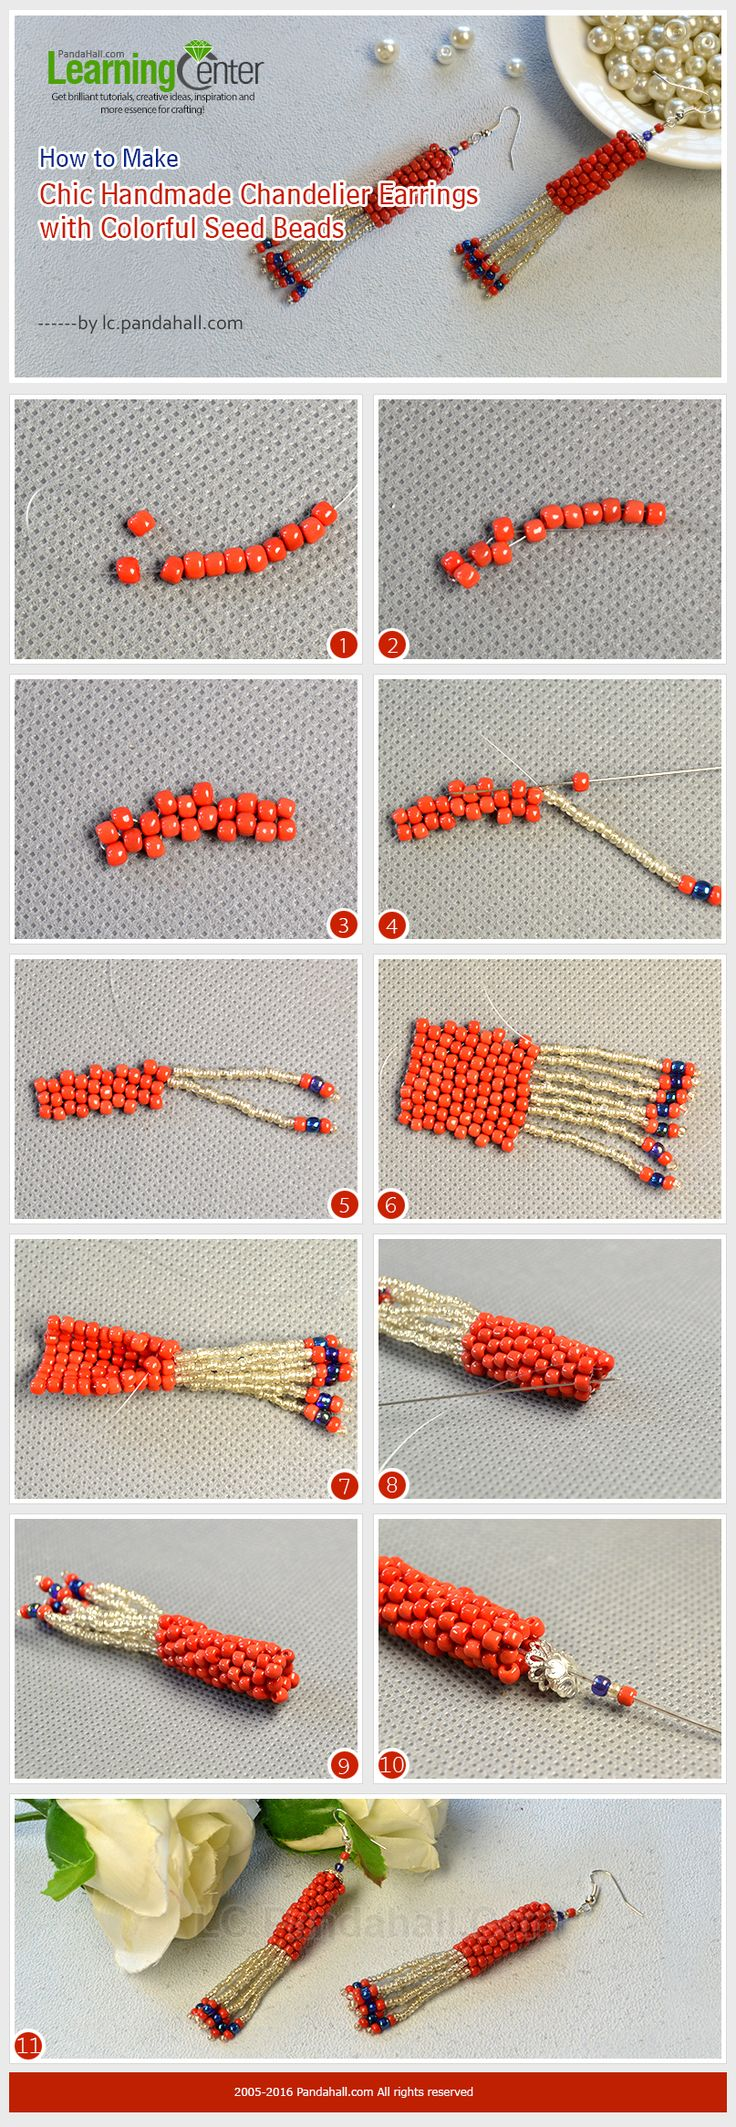 How to Make Chic Handmade Chandelier Earrings with Colorful Seed Beads from LC.Pandahall.com